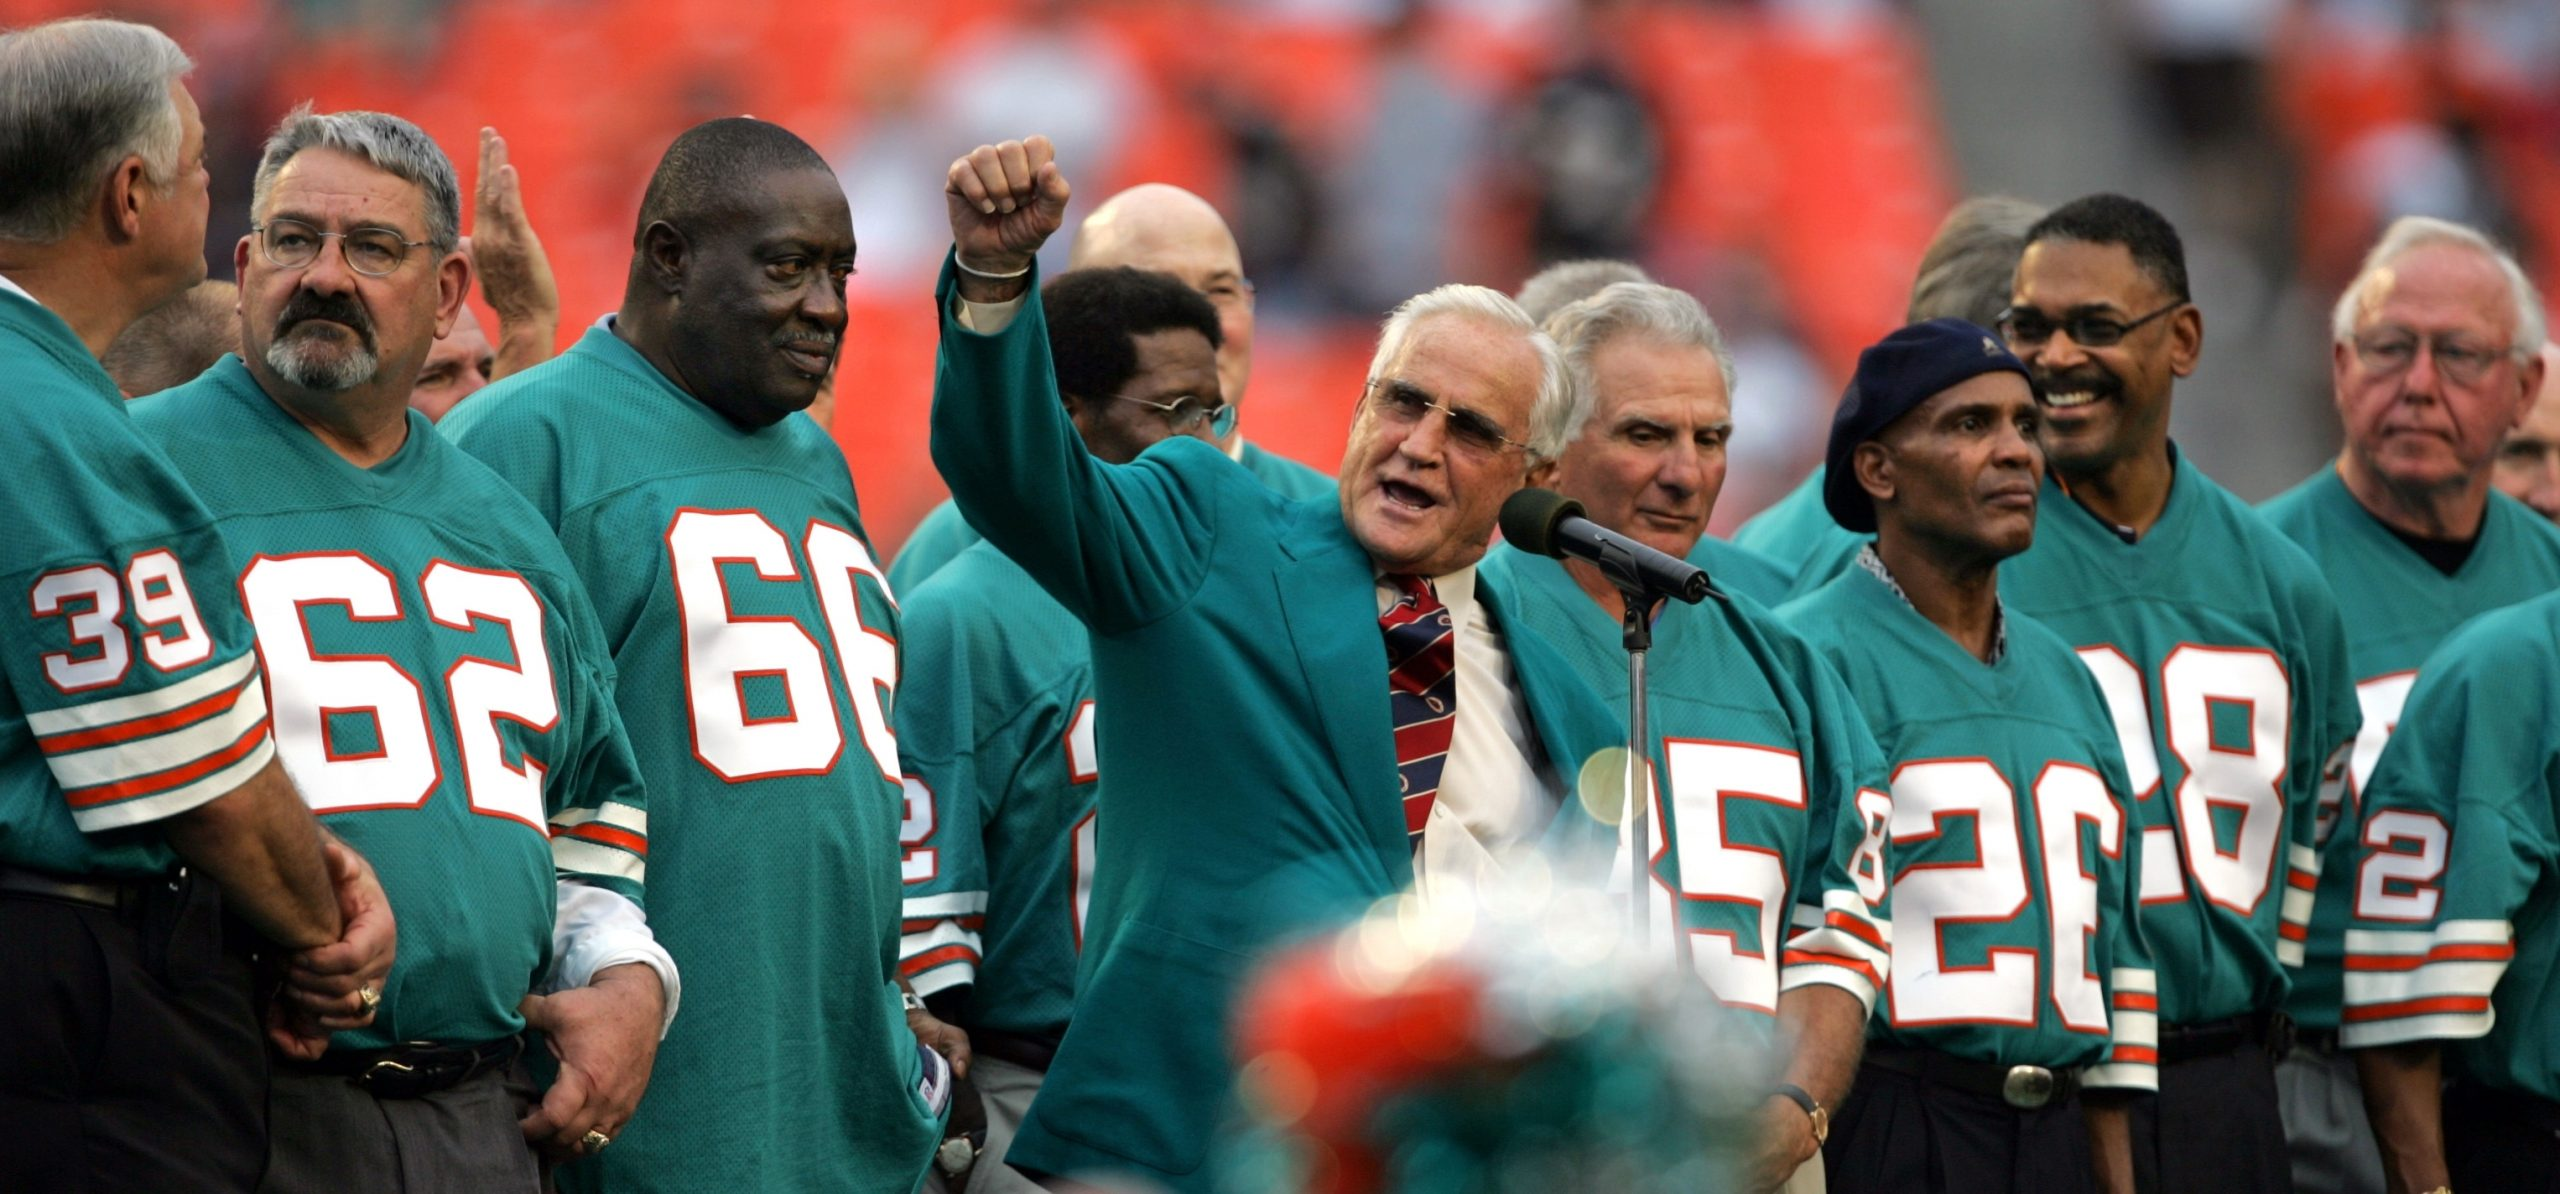 Special Report On Cte: 'worst May Be Yet To Come' For Nfl pertaining to What Year Did Miami Dolphins Go Undefeated And Won The Super Bowl